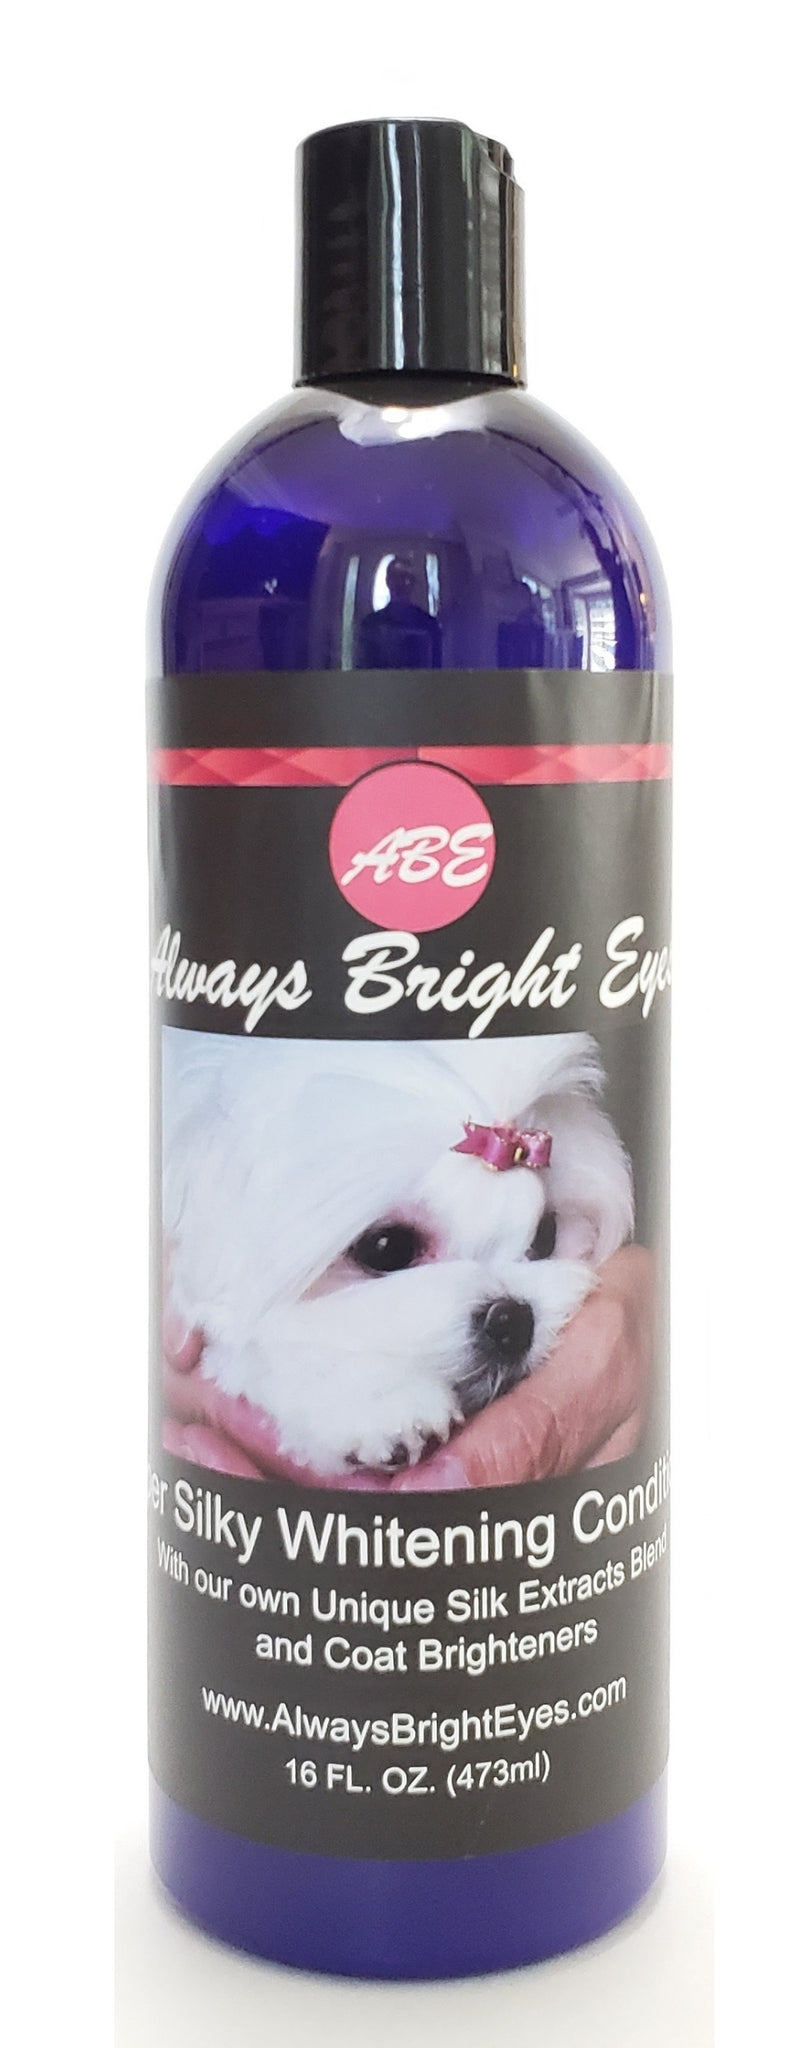 Always Bright Eyes – Super Silky Whitening Conditioner